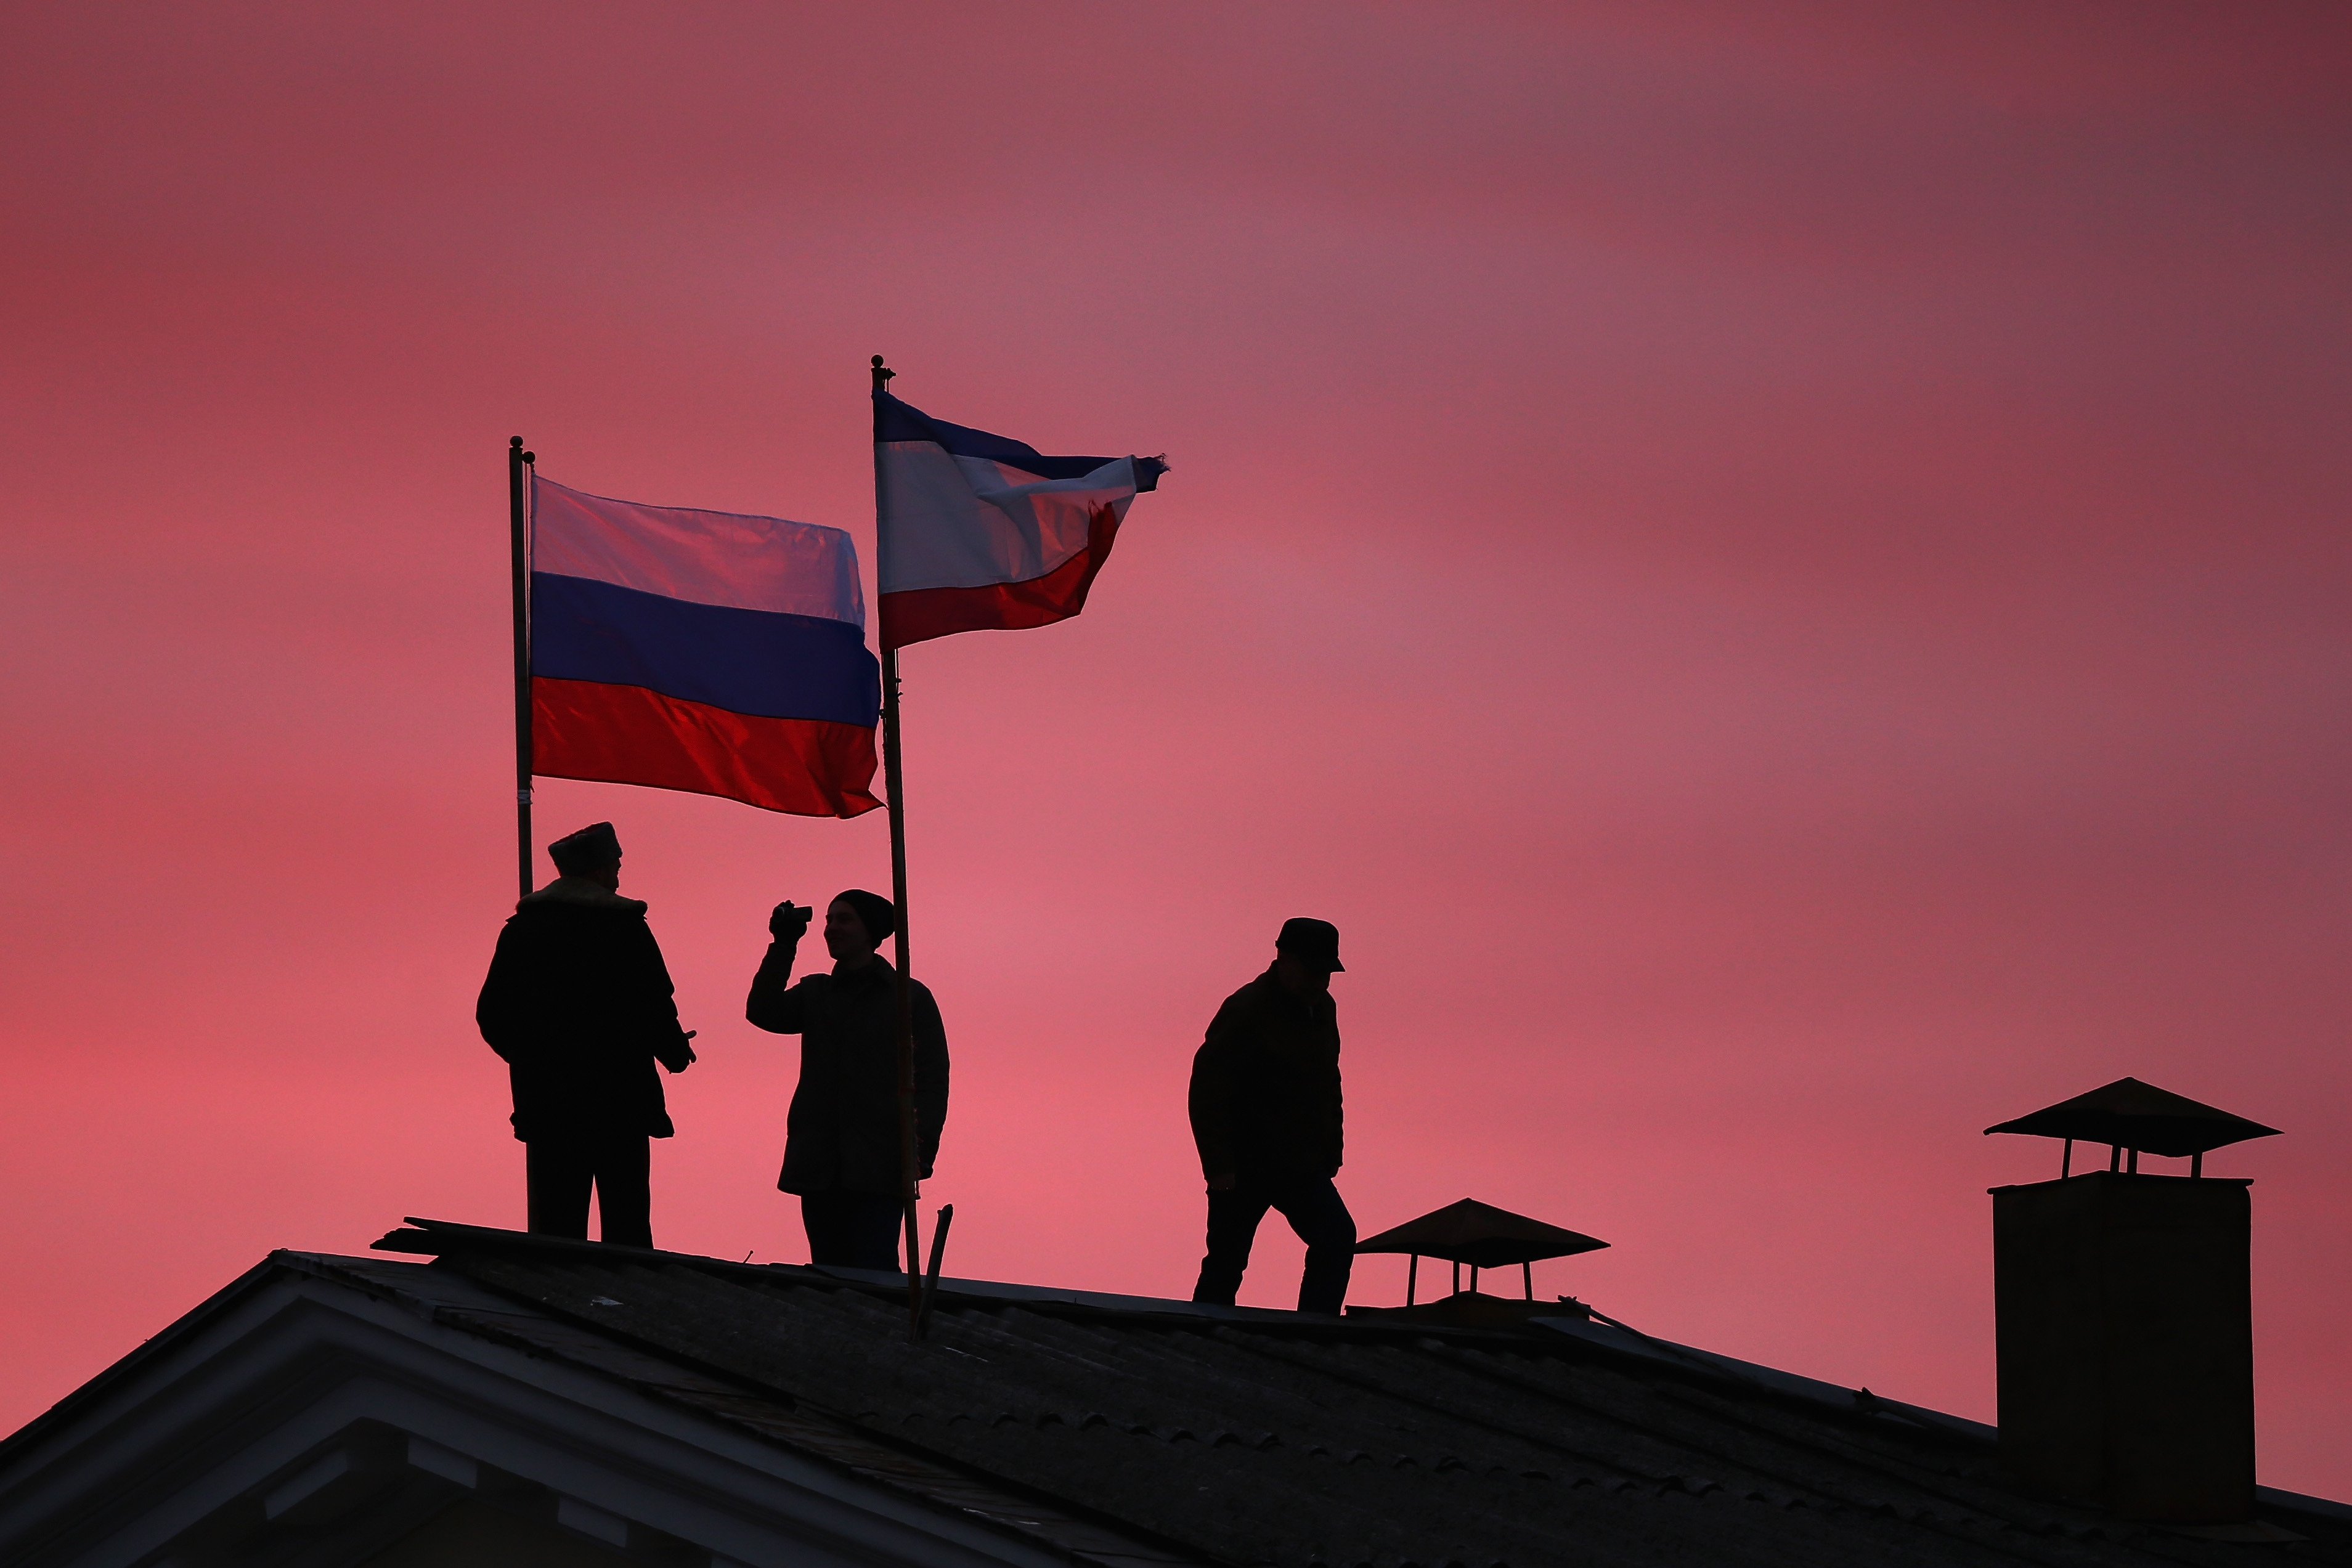 Cossack men on Monday install a Russian flag and a Crimean flag on the roof of the City Hall building in Bakhchysarai, central Crimea, Ukraine.